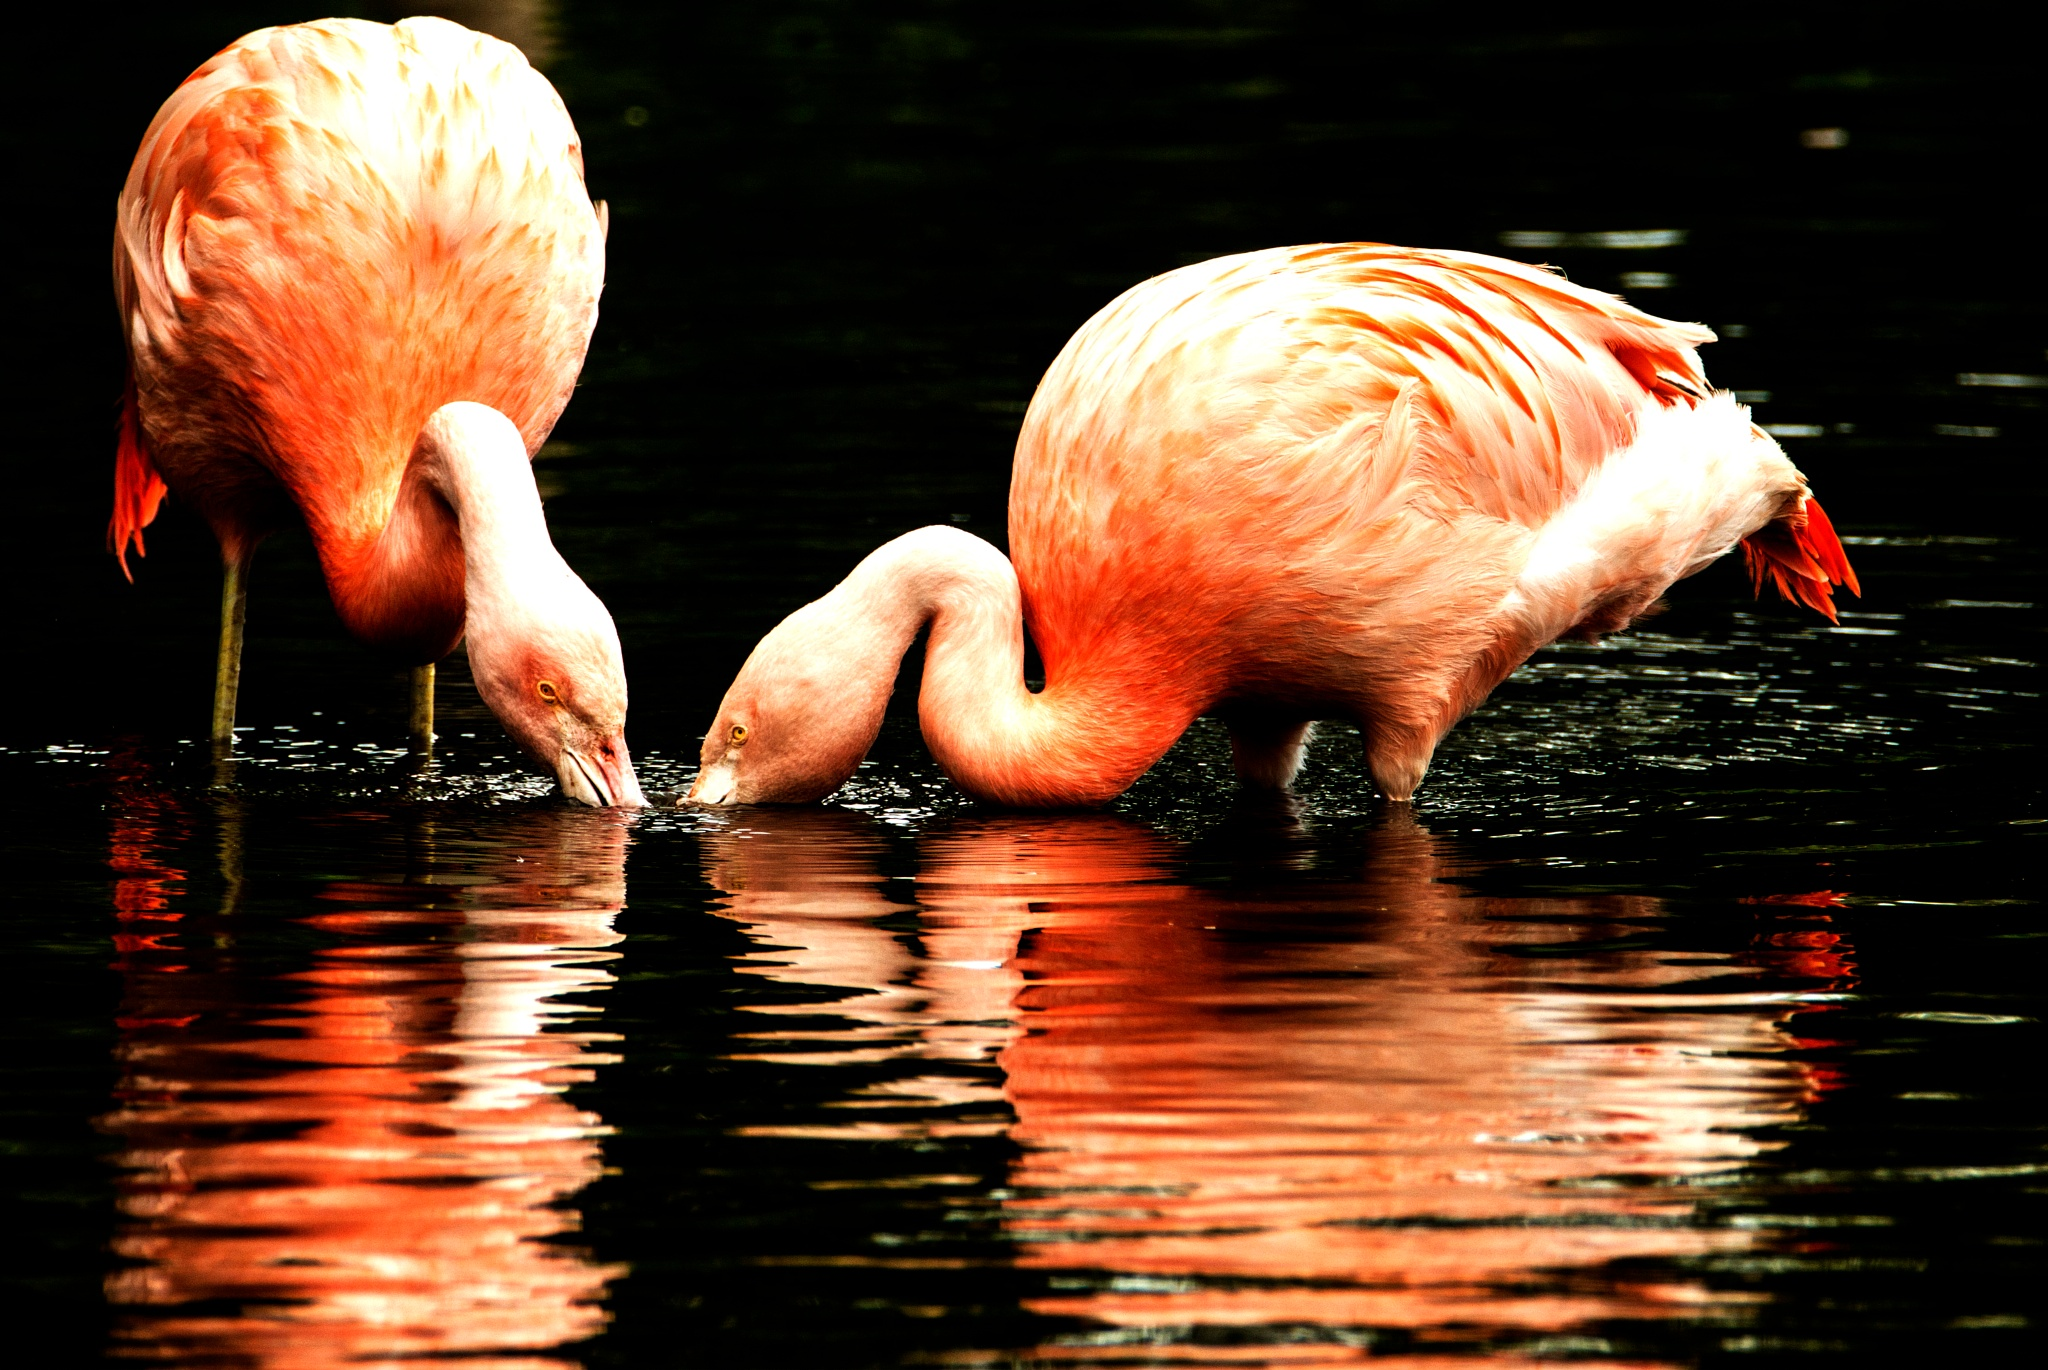 A Pair of Flamingos by Wizard